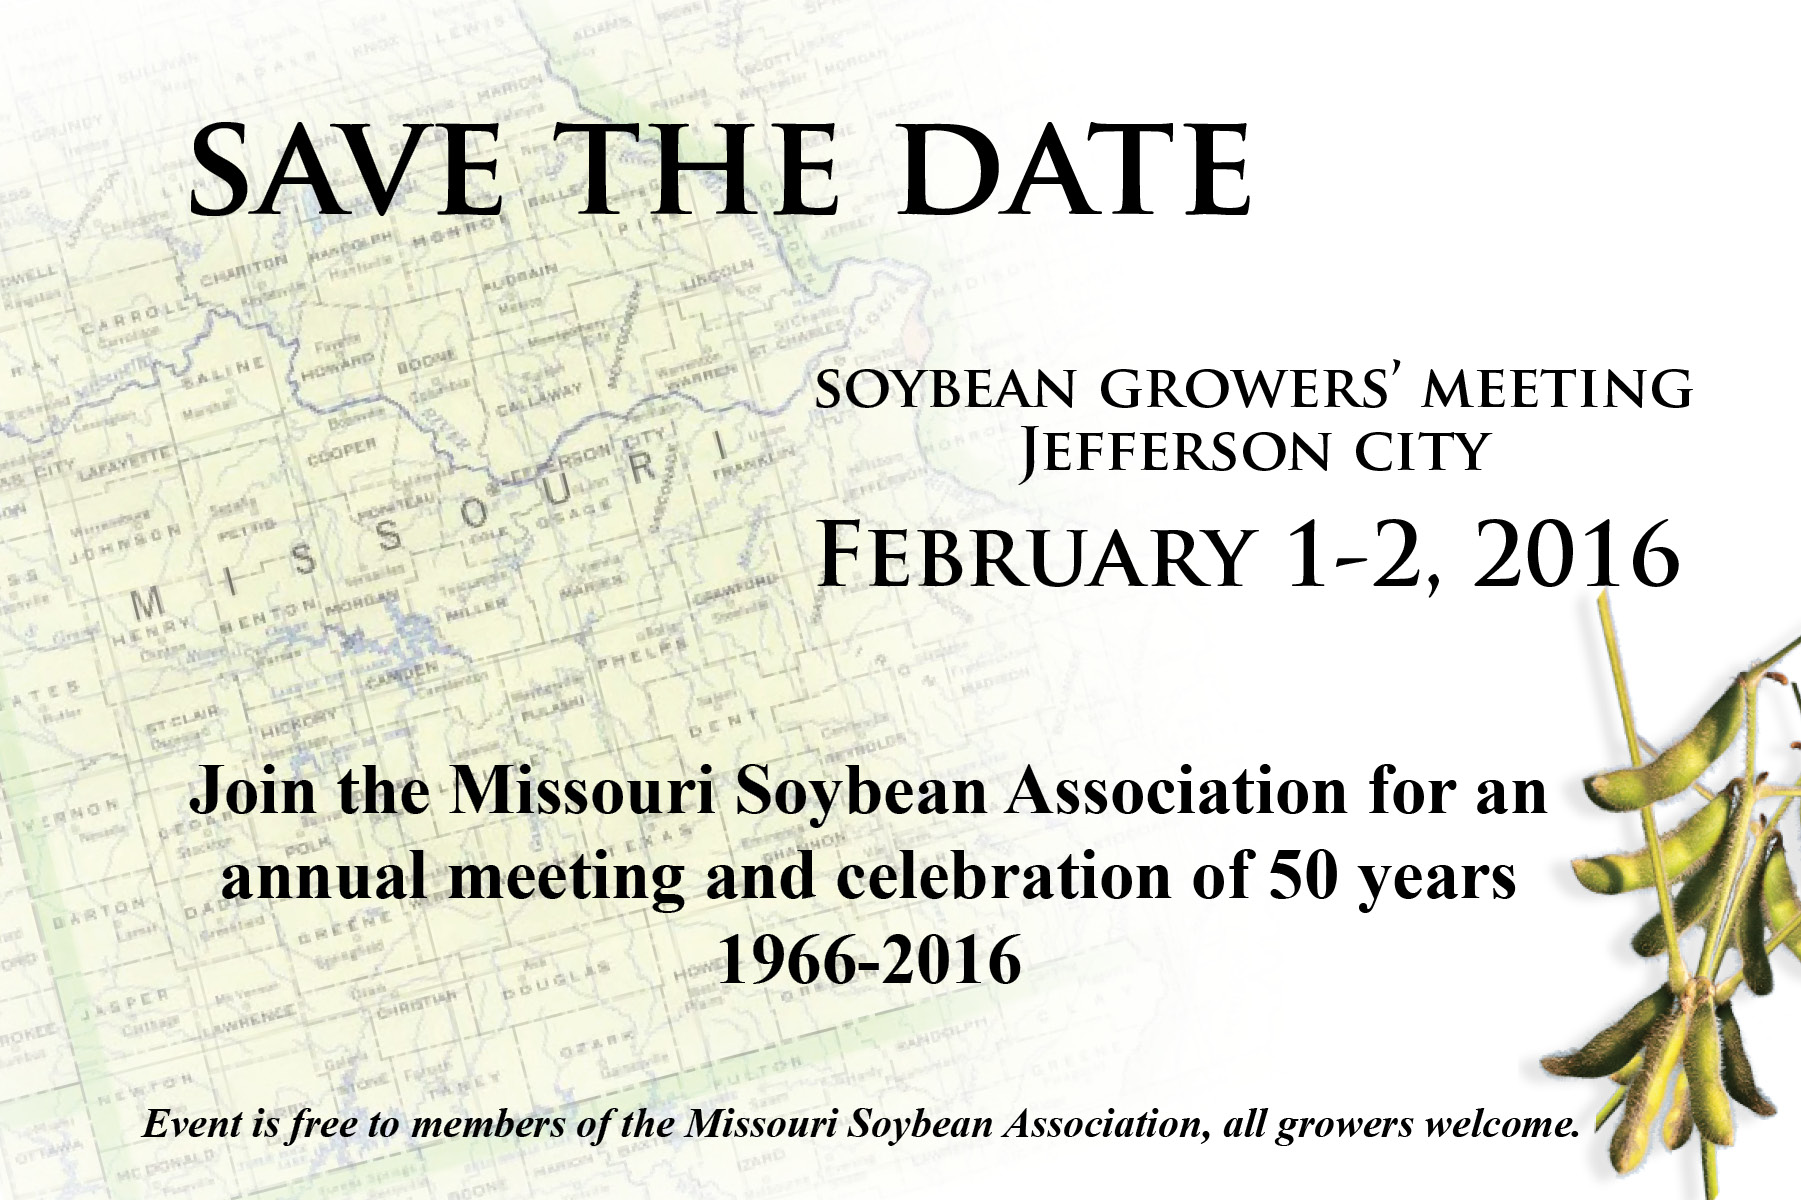 Save the Date – Missouri Soybean Association Annual Meeting, 50th Anniversary